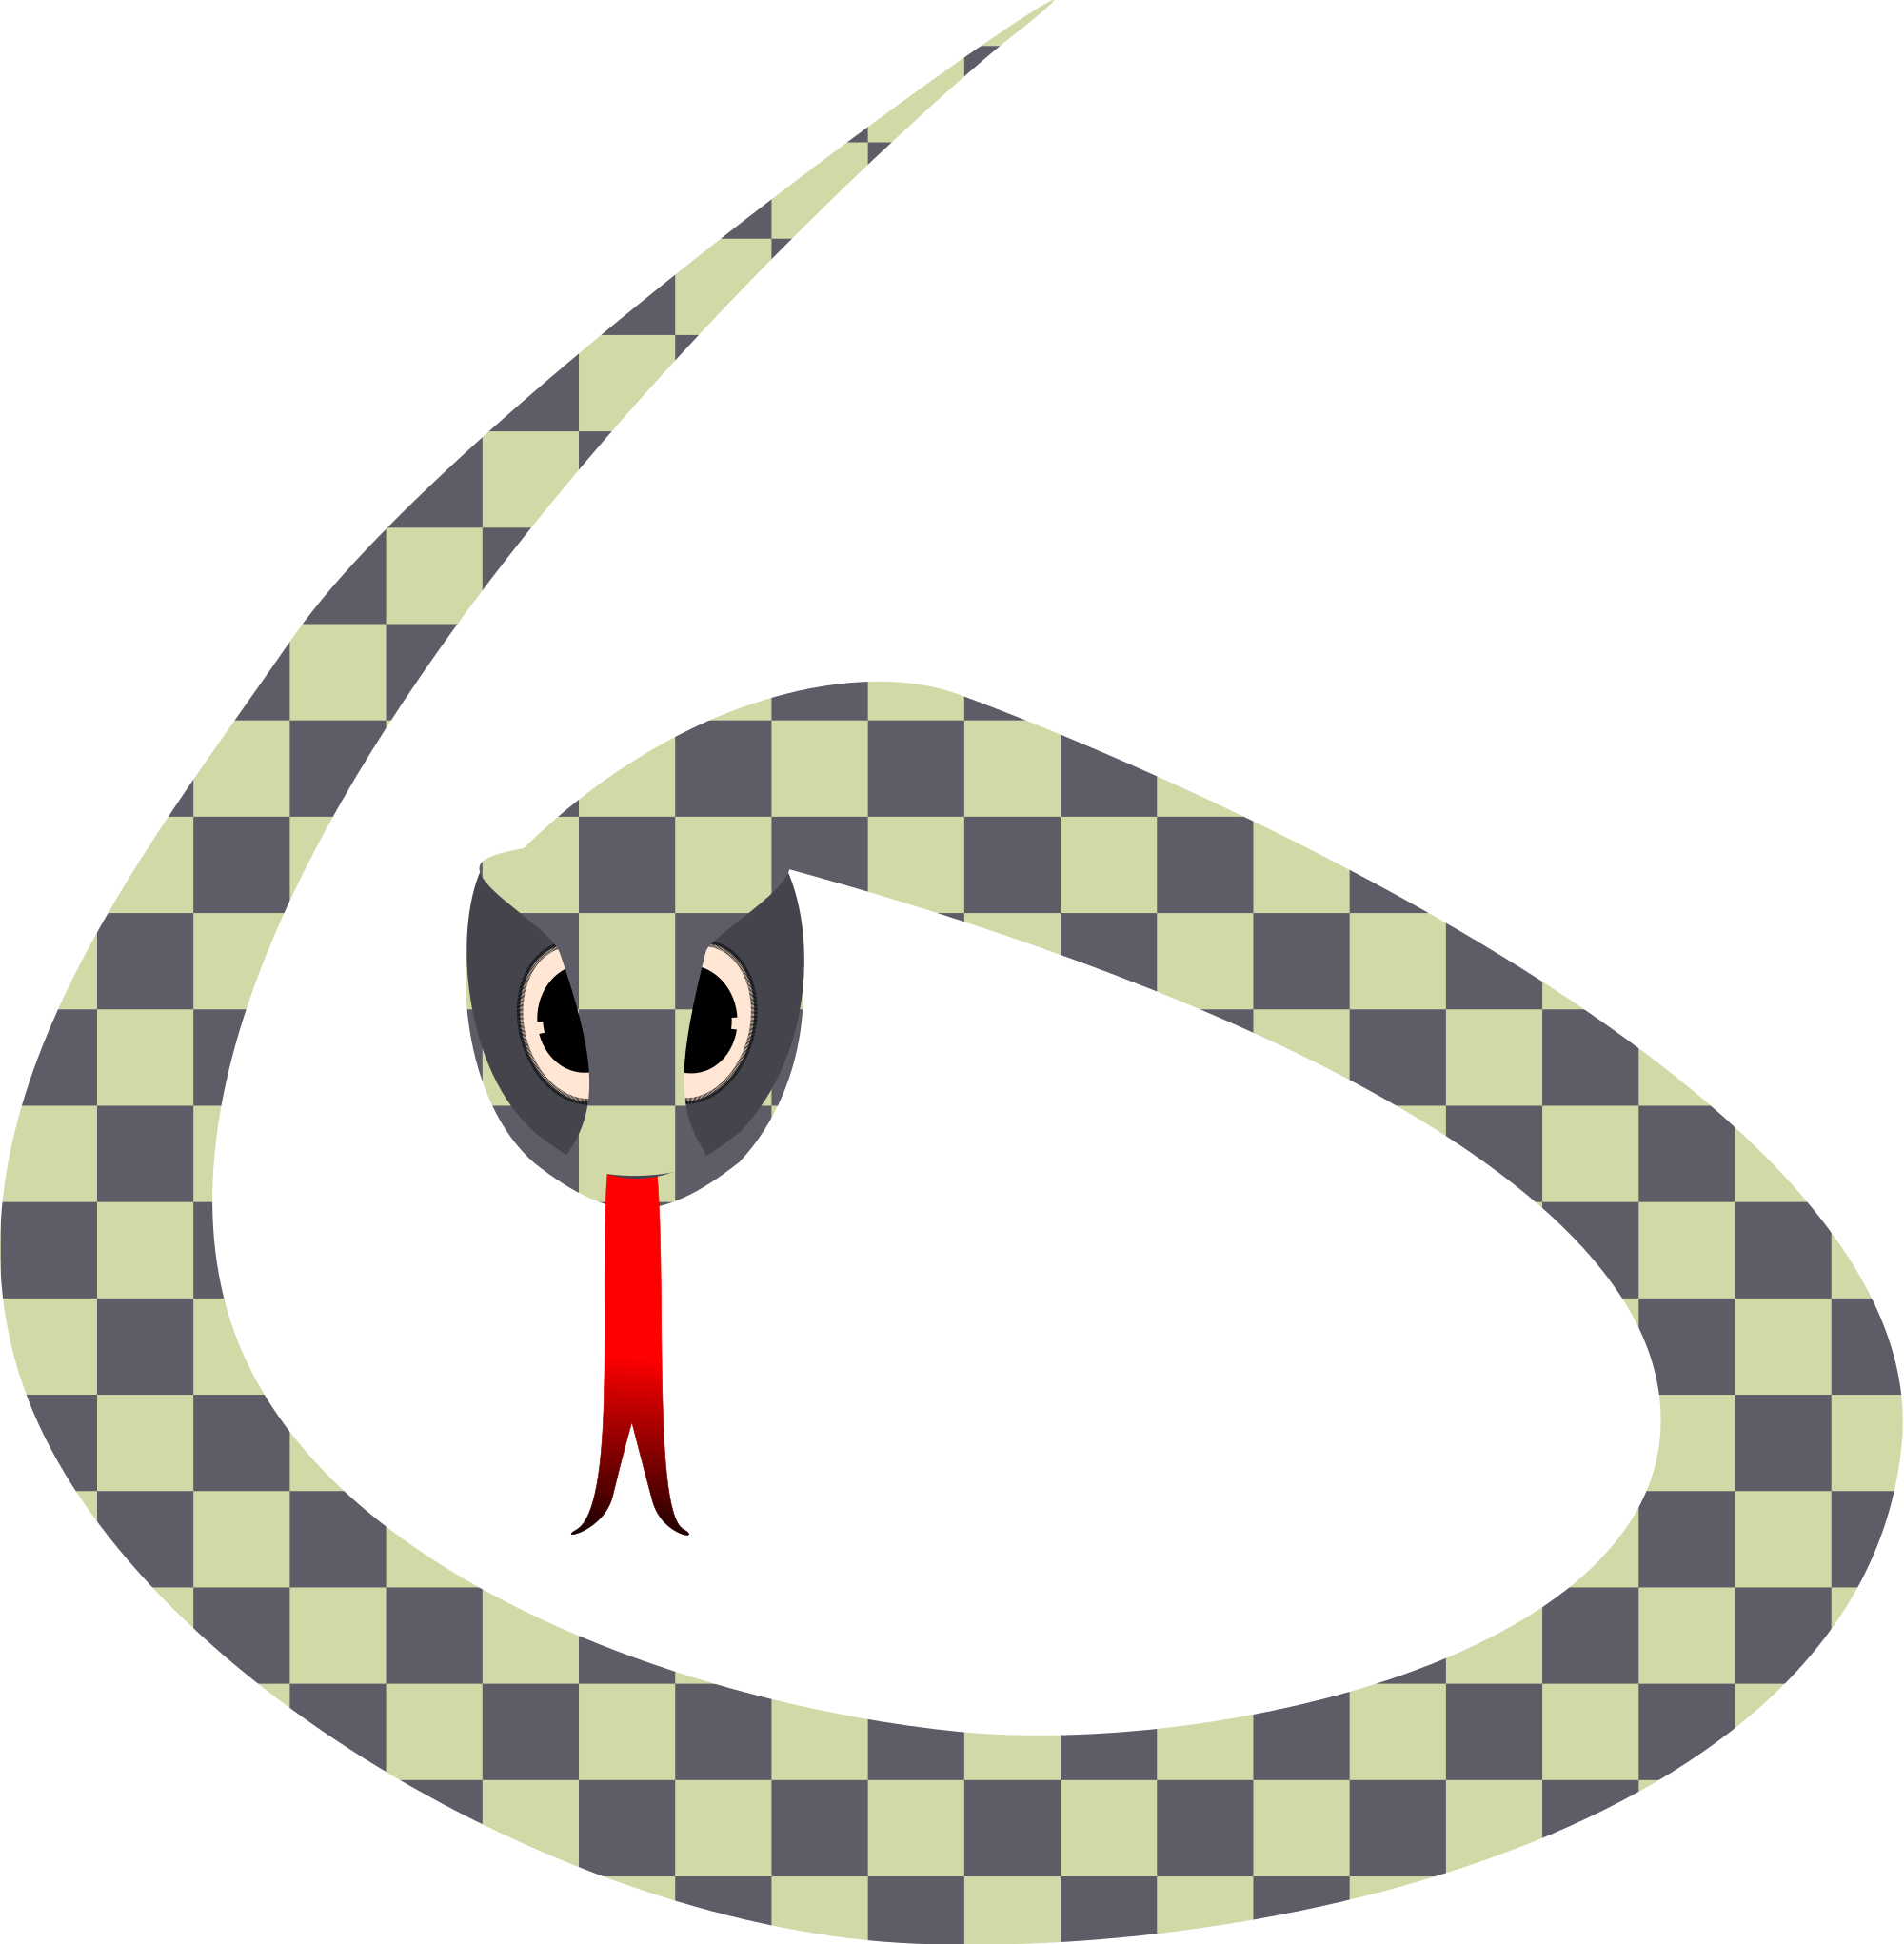 Snake clipart stretchy. Scary at getdrawings com